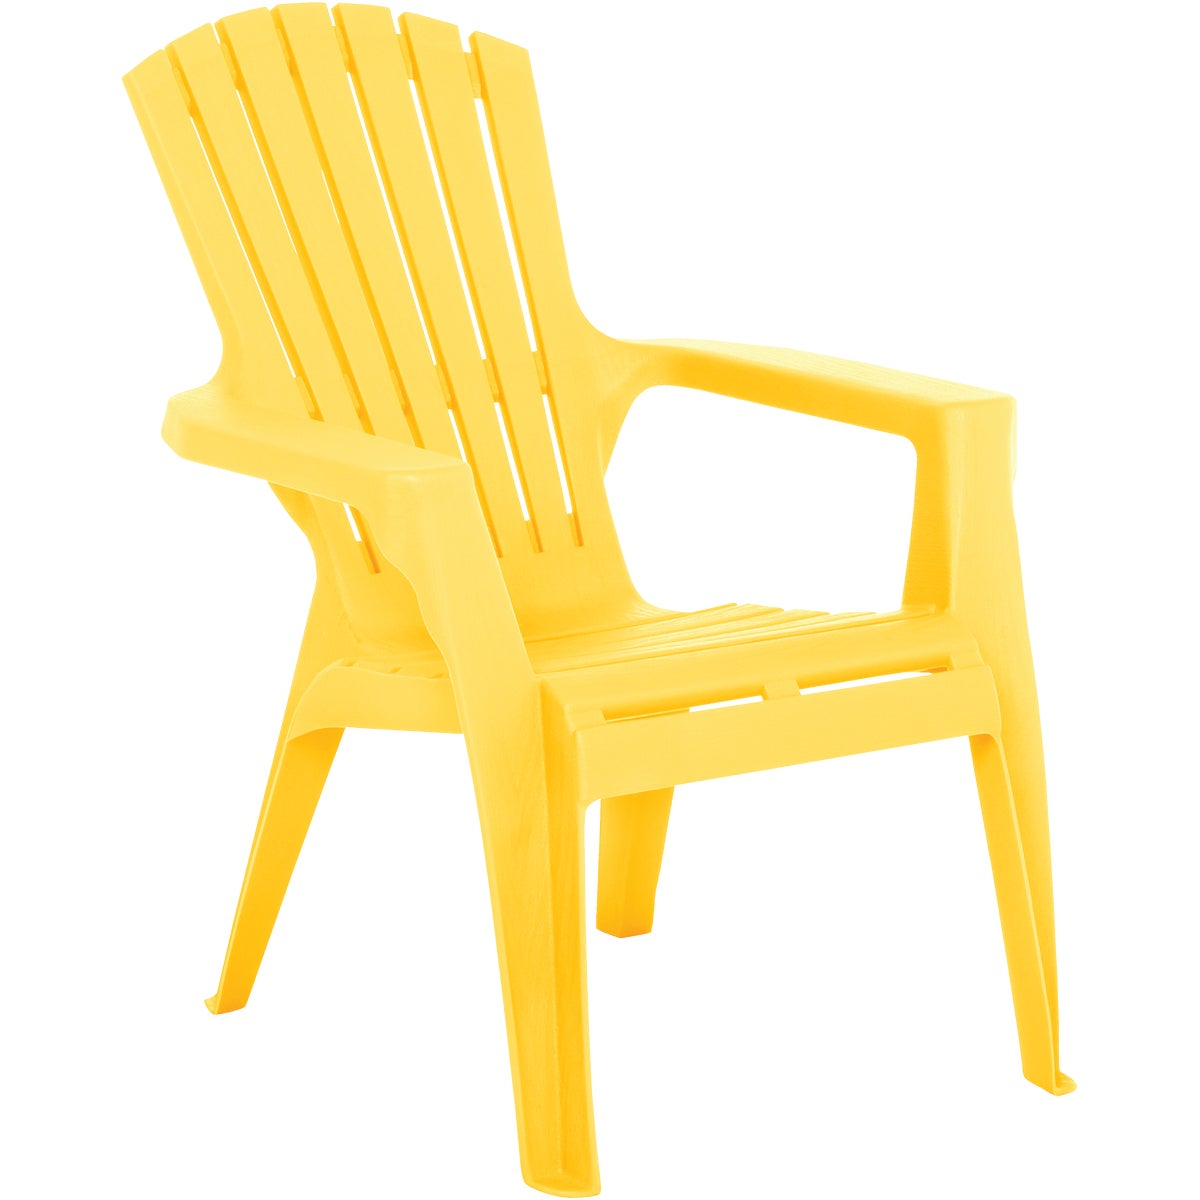 YELLOW KIDS ADIRONDACK